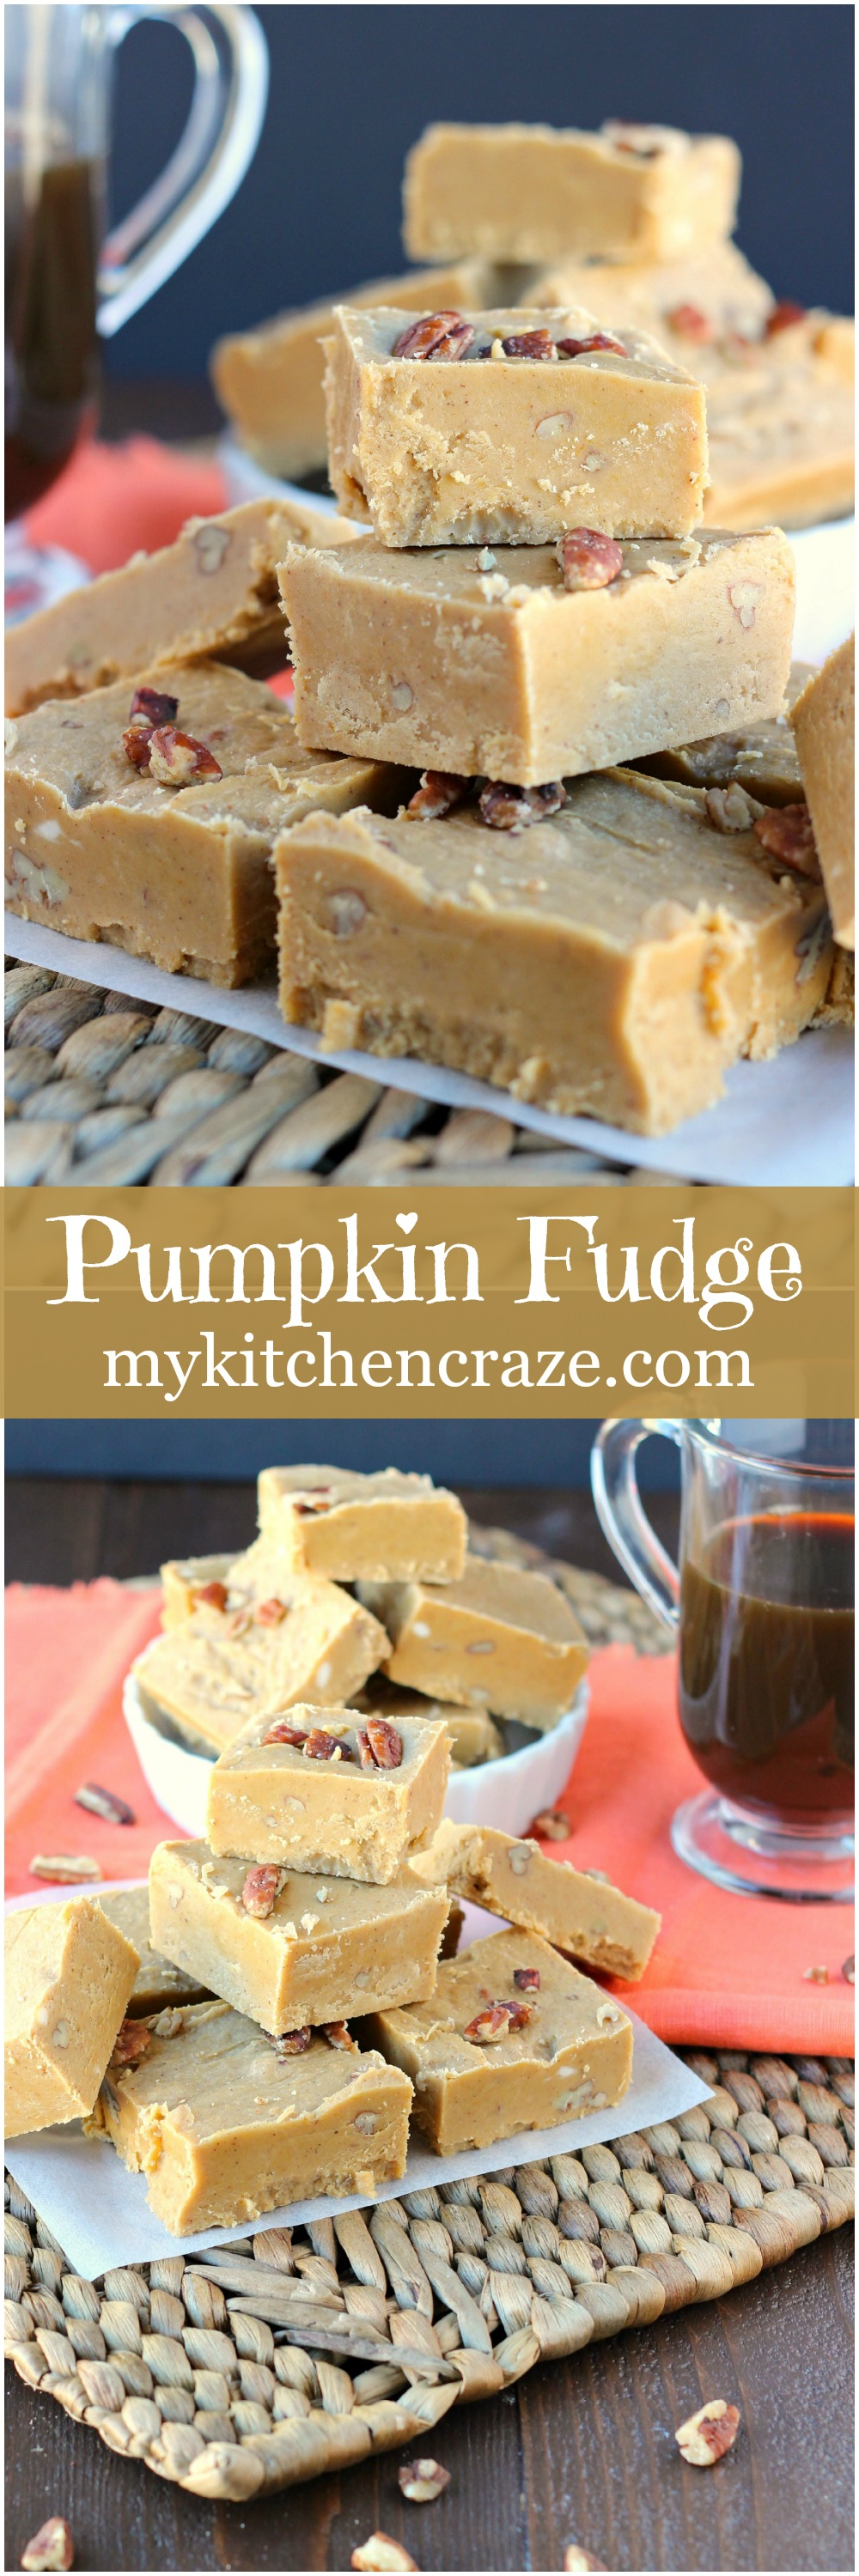 Pumpkin Fudge ~ mykitchencraze.com ~Pumpkin Fudge is a classic holiday recipe that tastes delicious and is perfect for the season!